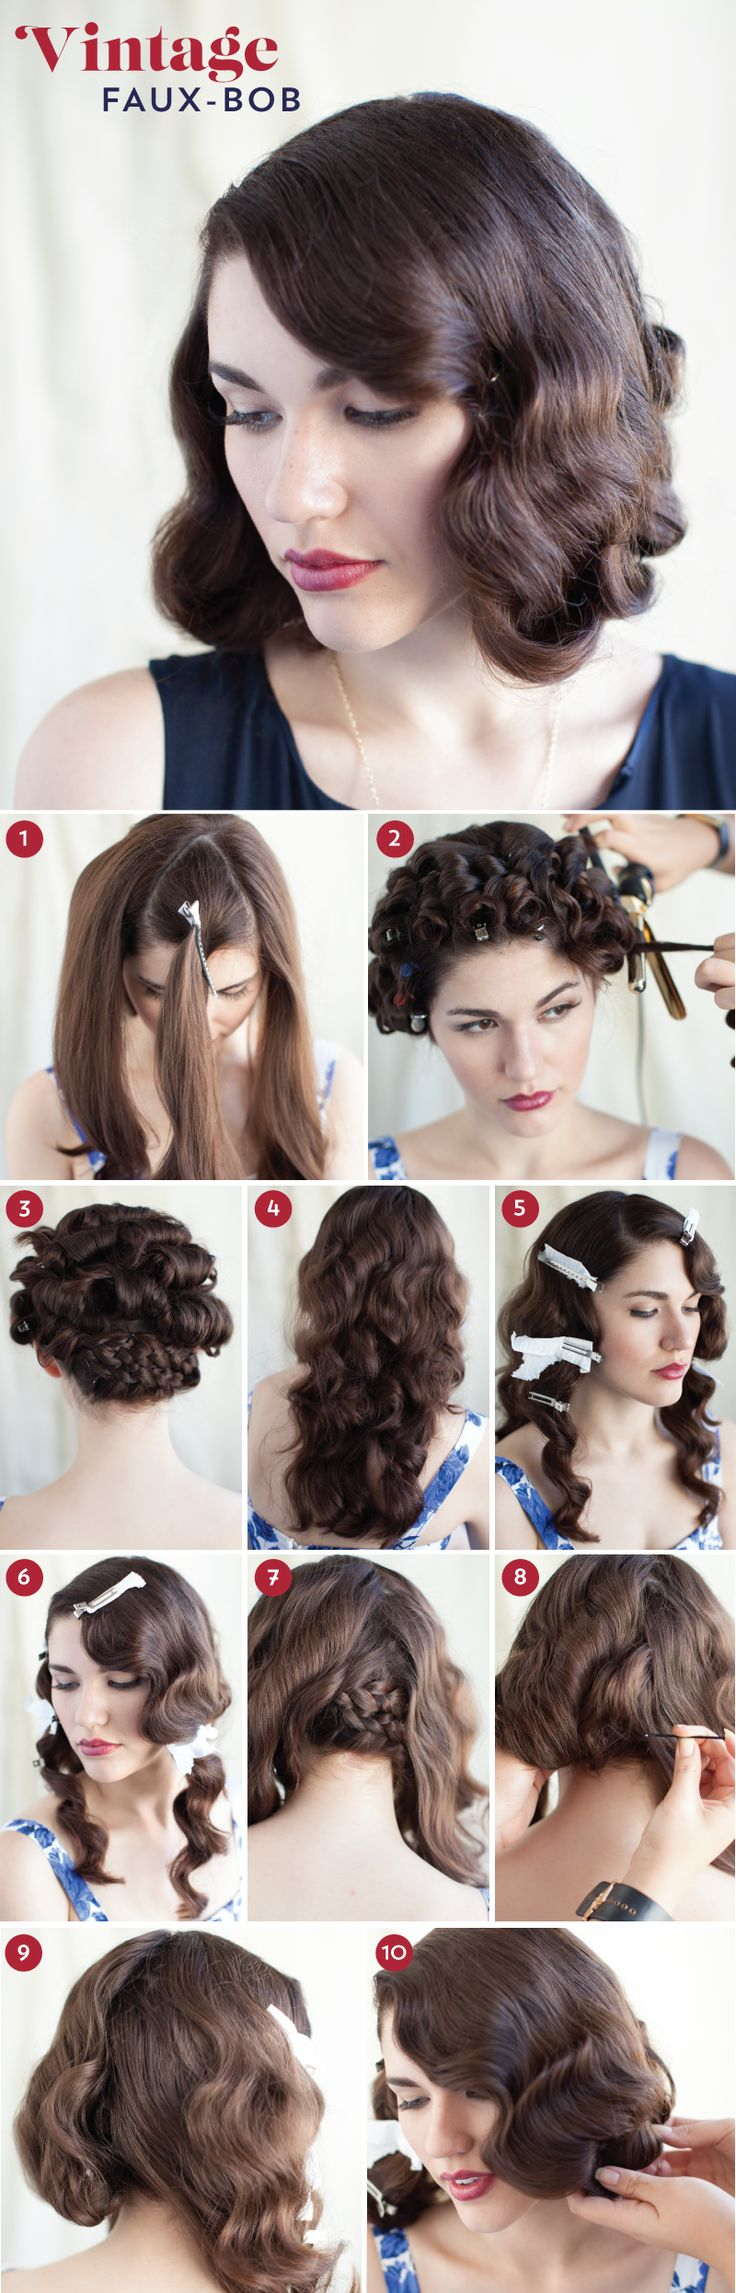 faux bob for long hair | Go Short for the Day with Our Faux-bob Tutorial | Story by ModCloth